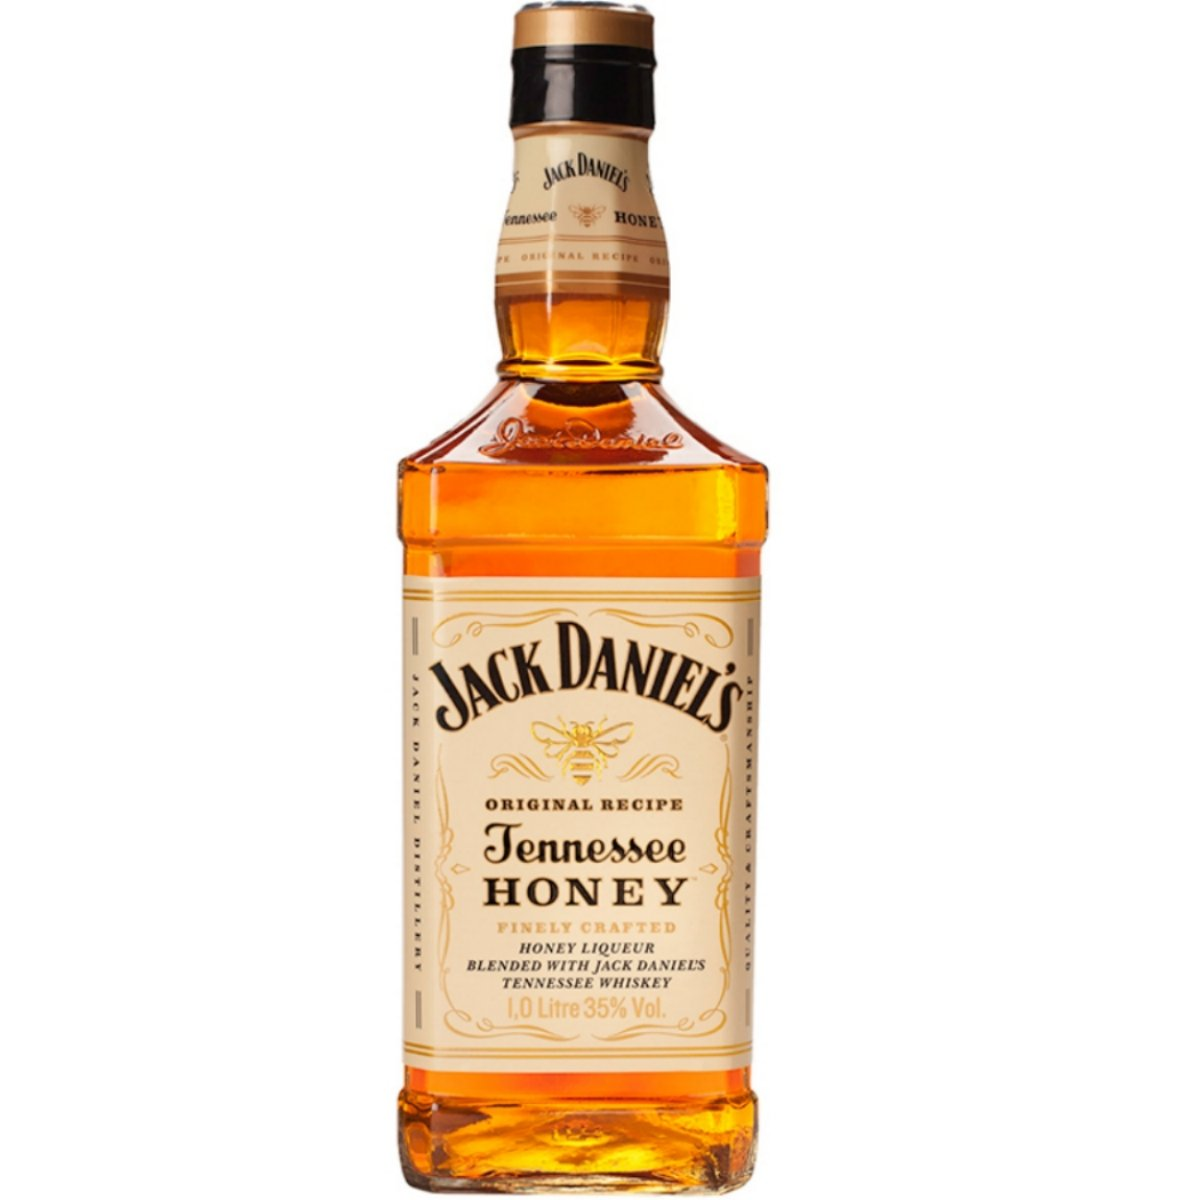 It's just a picture of Clean Jack Daniels Honey Label